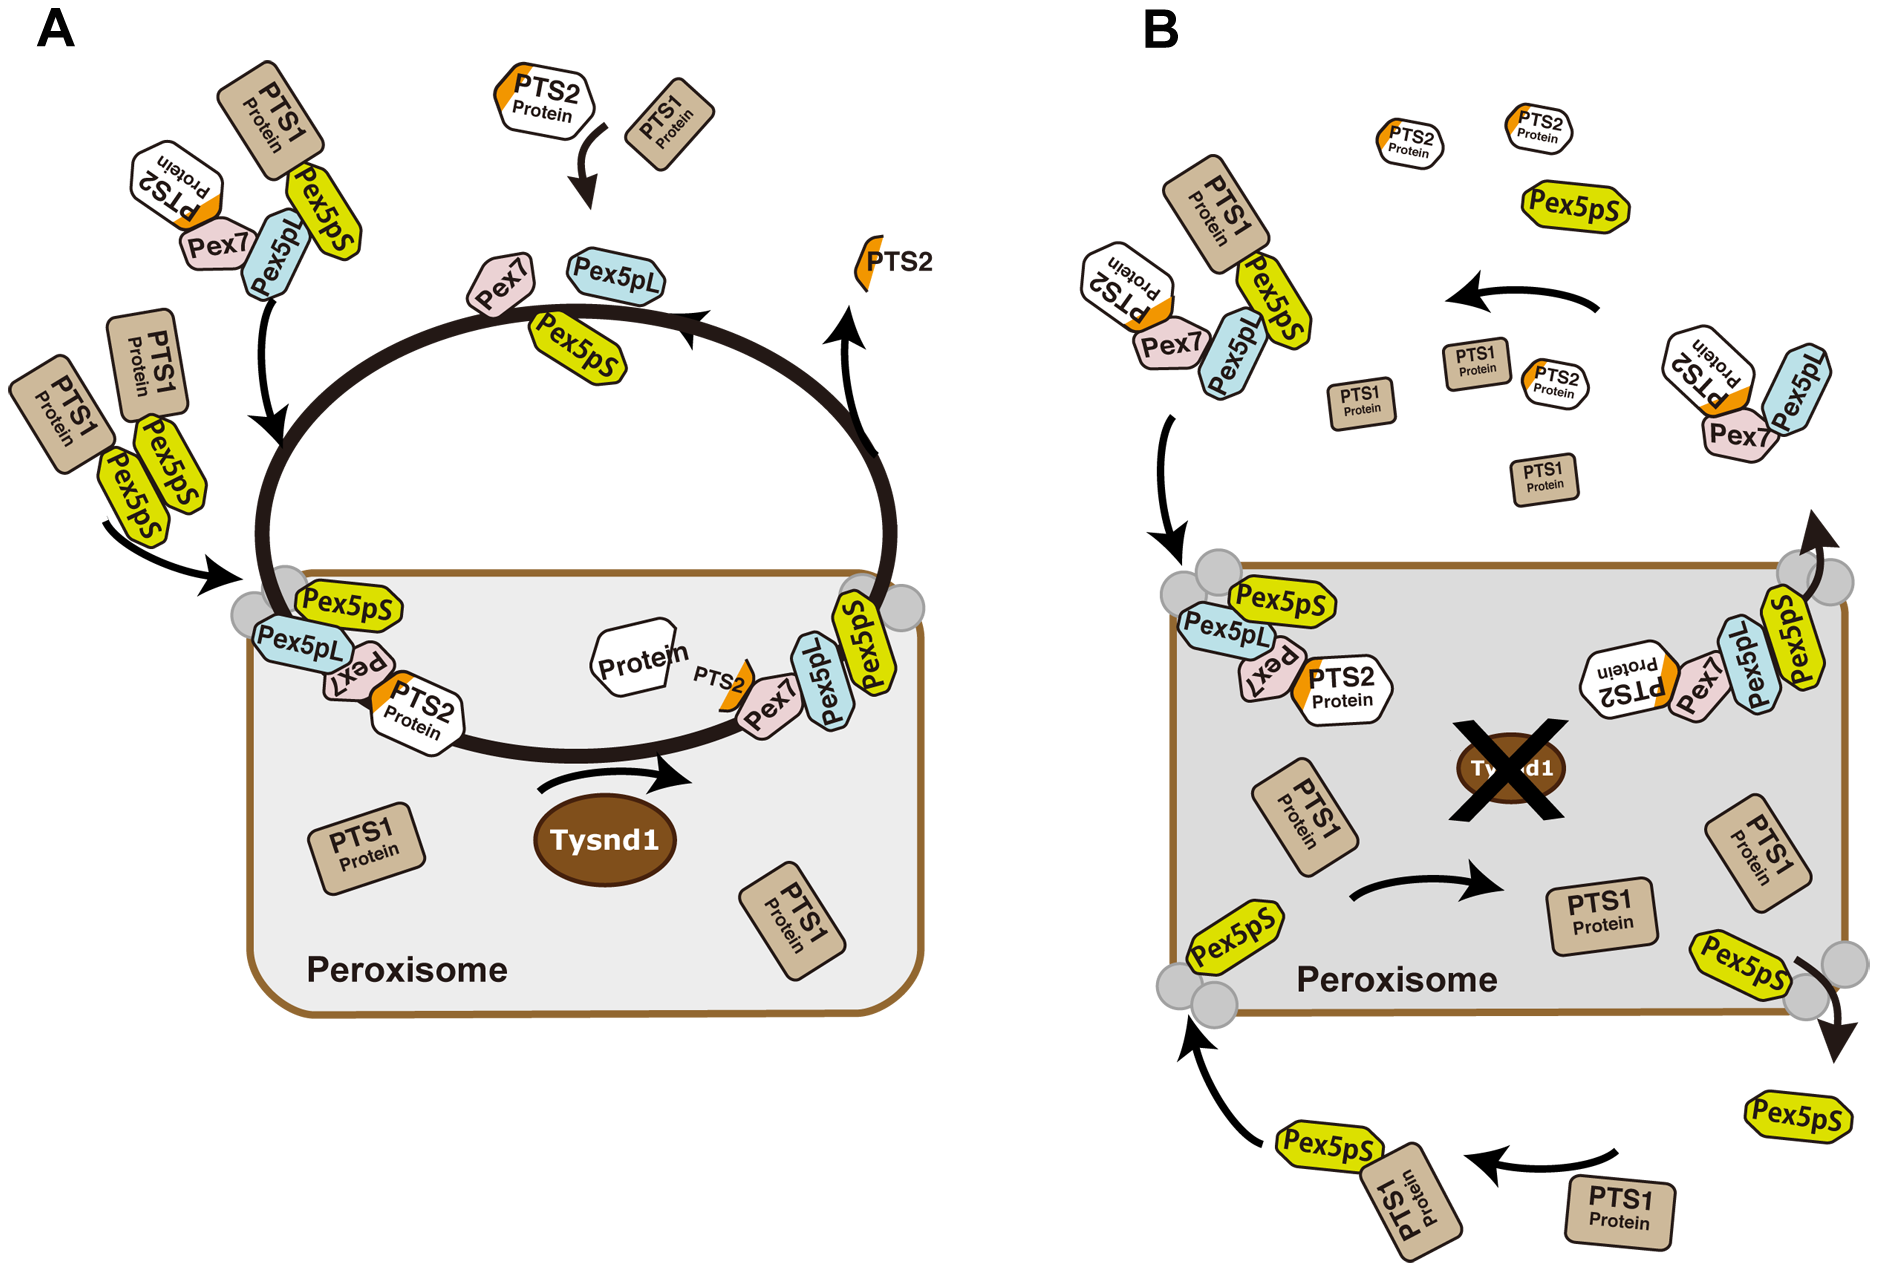 Proposed model of PTS2-protein import into peroxisomes in presence or absence of Tysnd1.